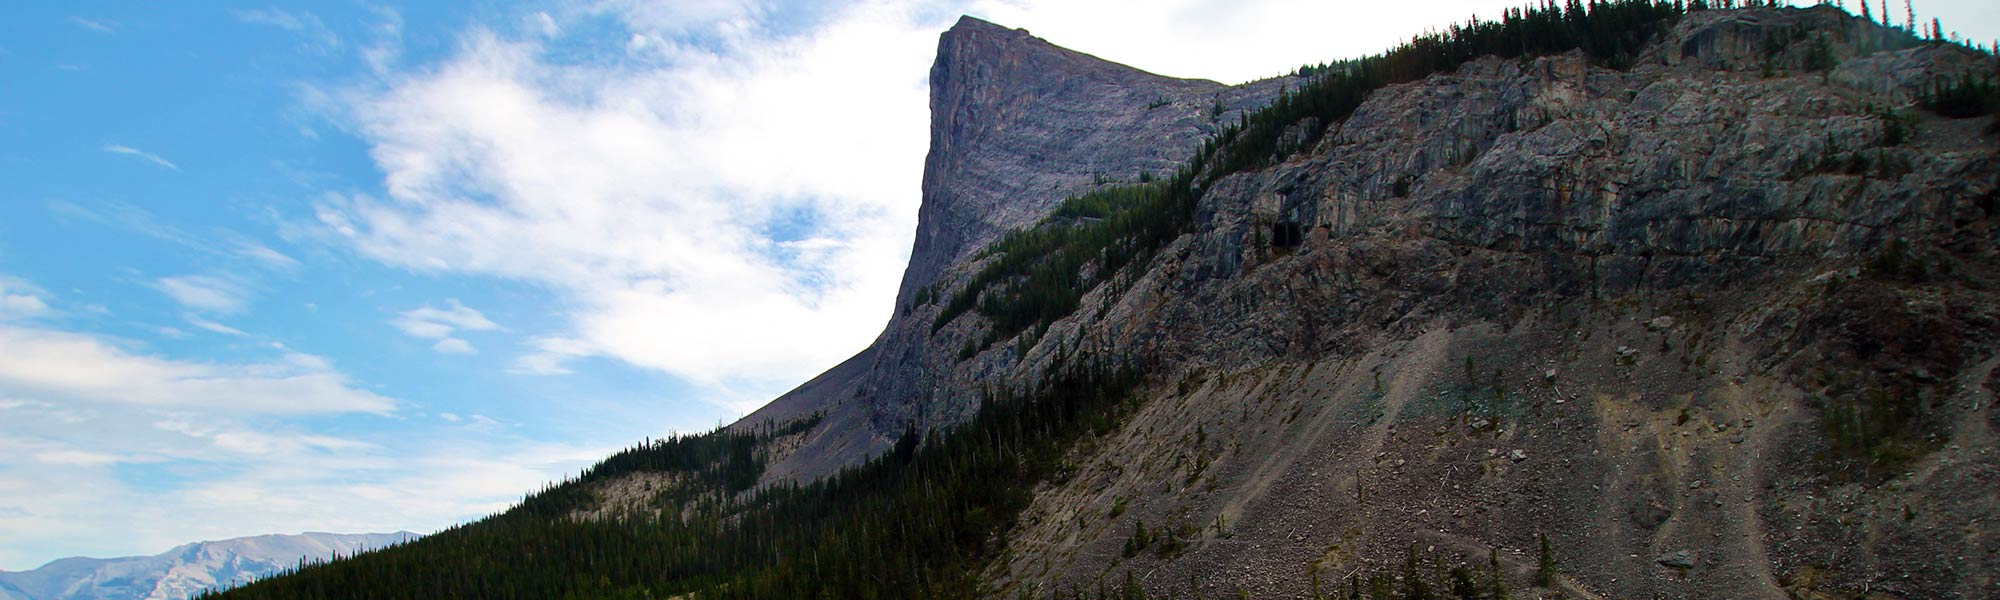 At the base of Ha Ling Peak, one of many mountins near Canmore, Alberta